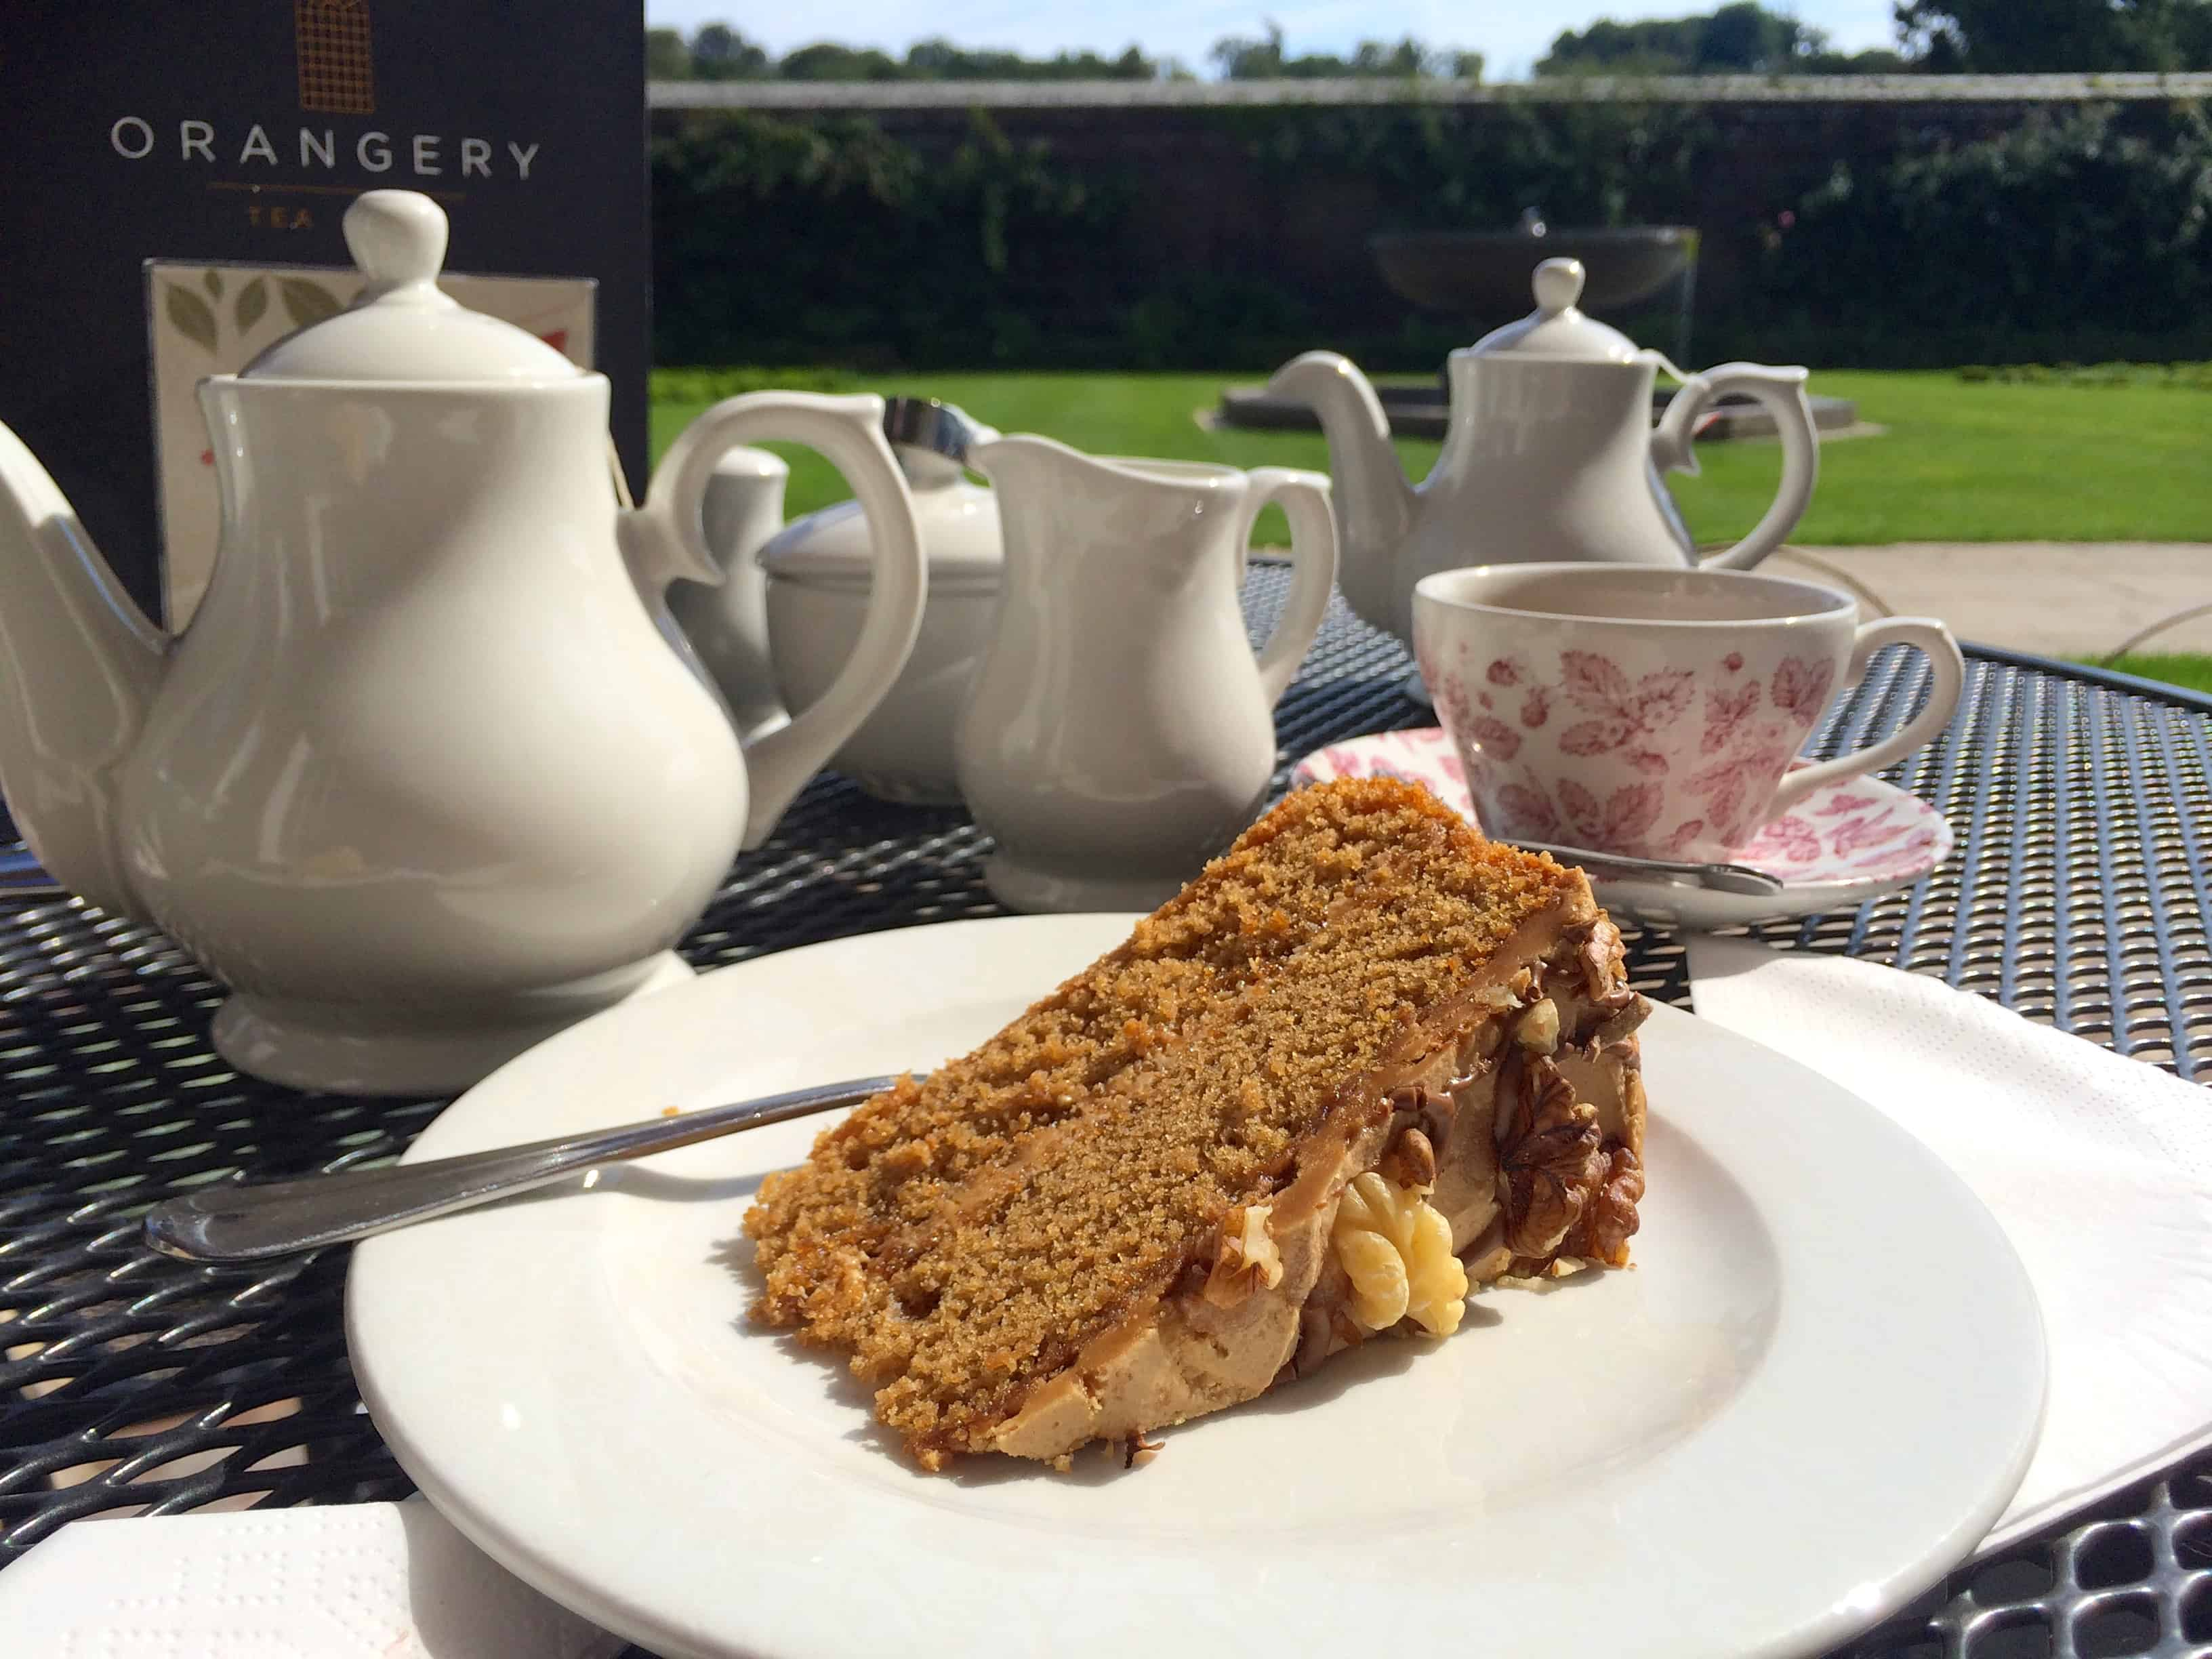 Coffee and Walnut Cake at the Orangery Tea Room